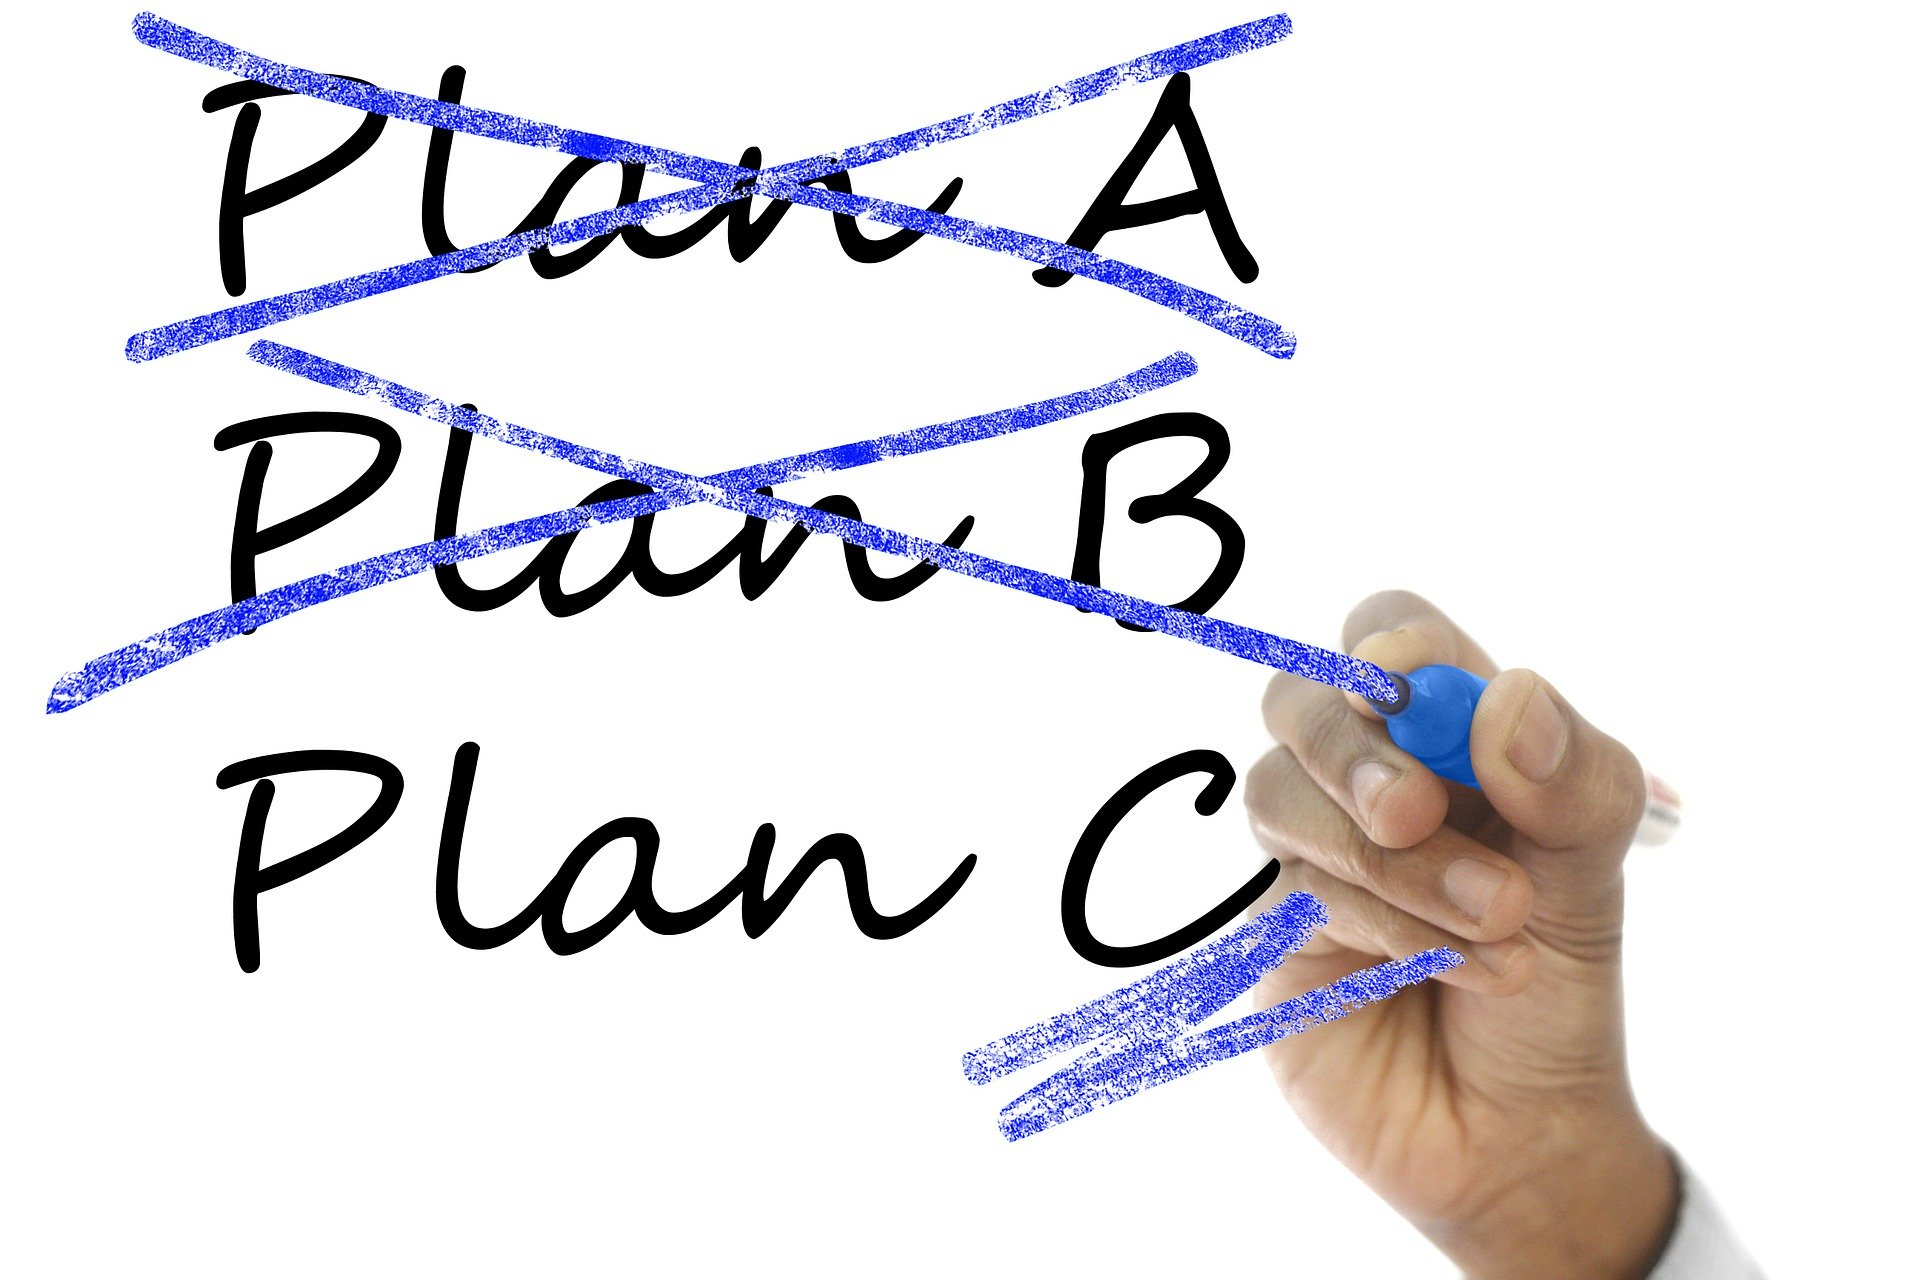 Having a plan B for the plan B!